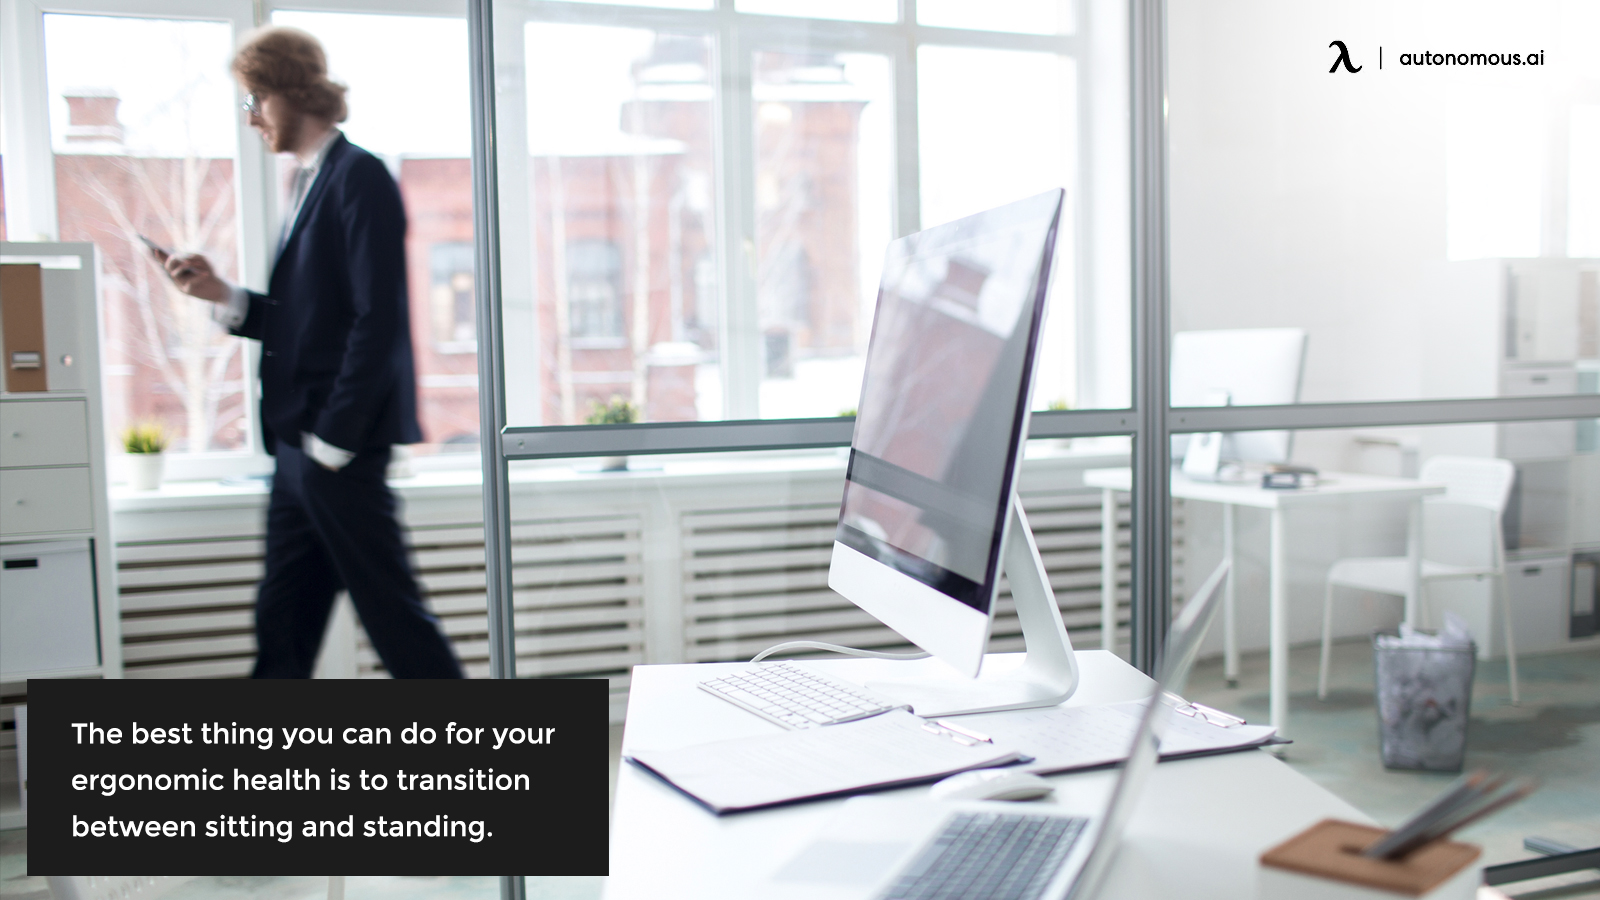 Transitioning between sitting and standing